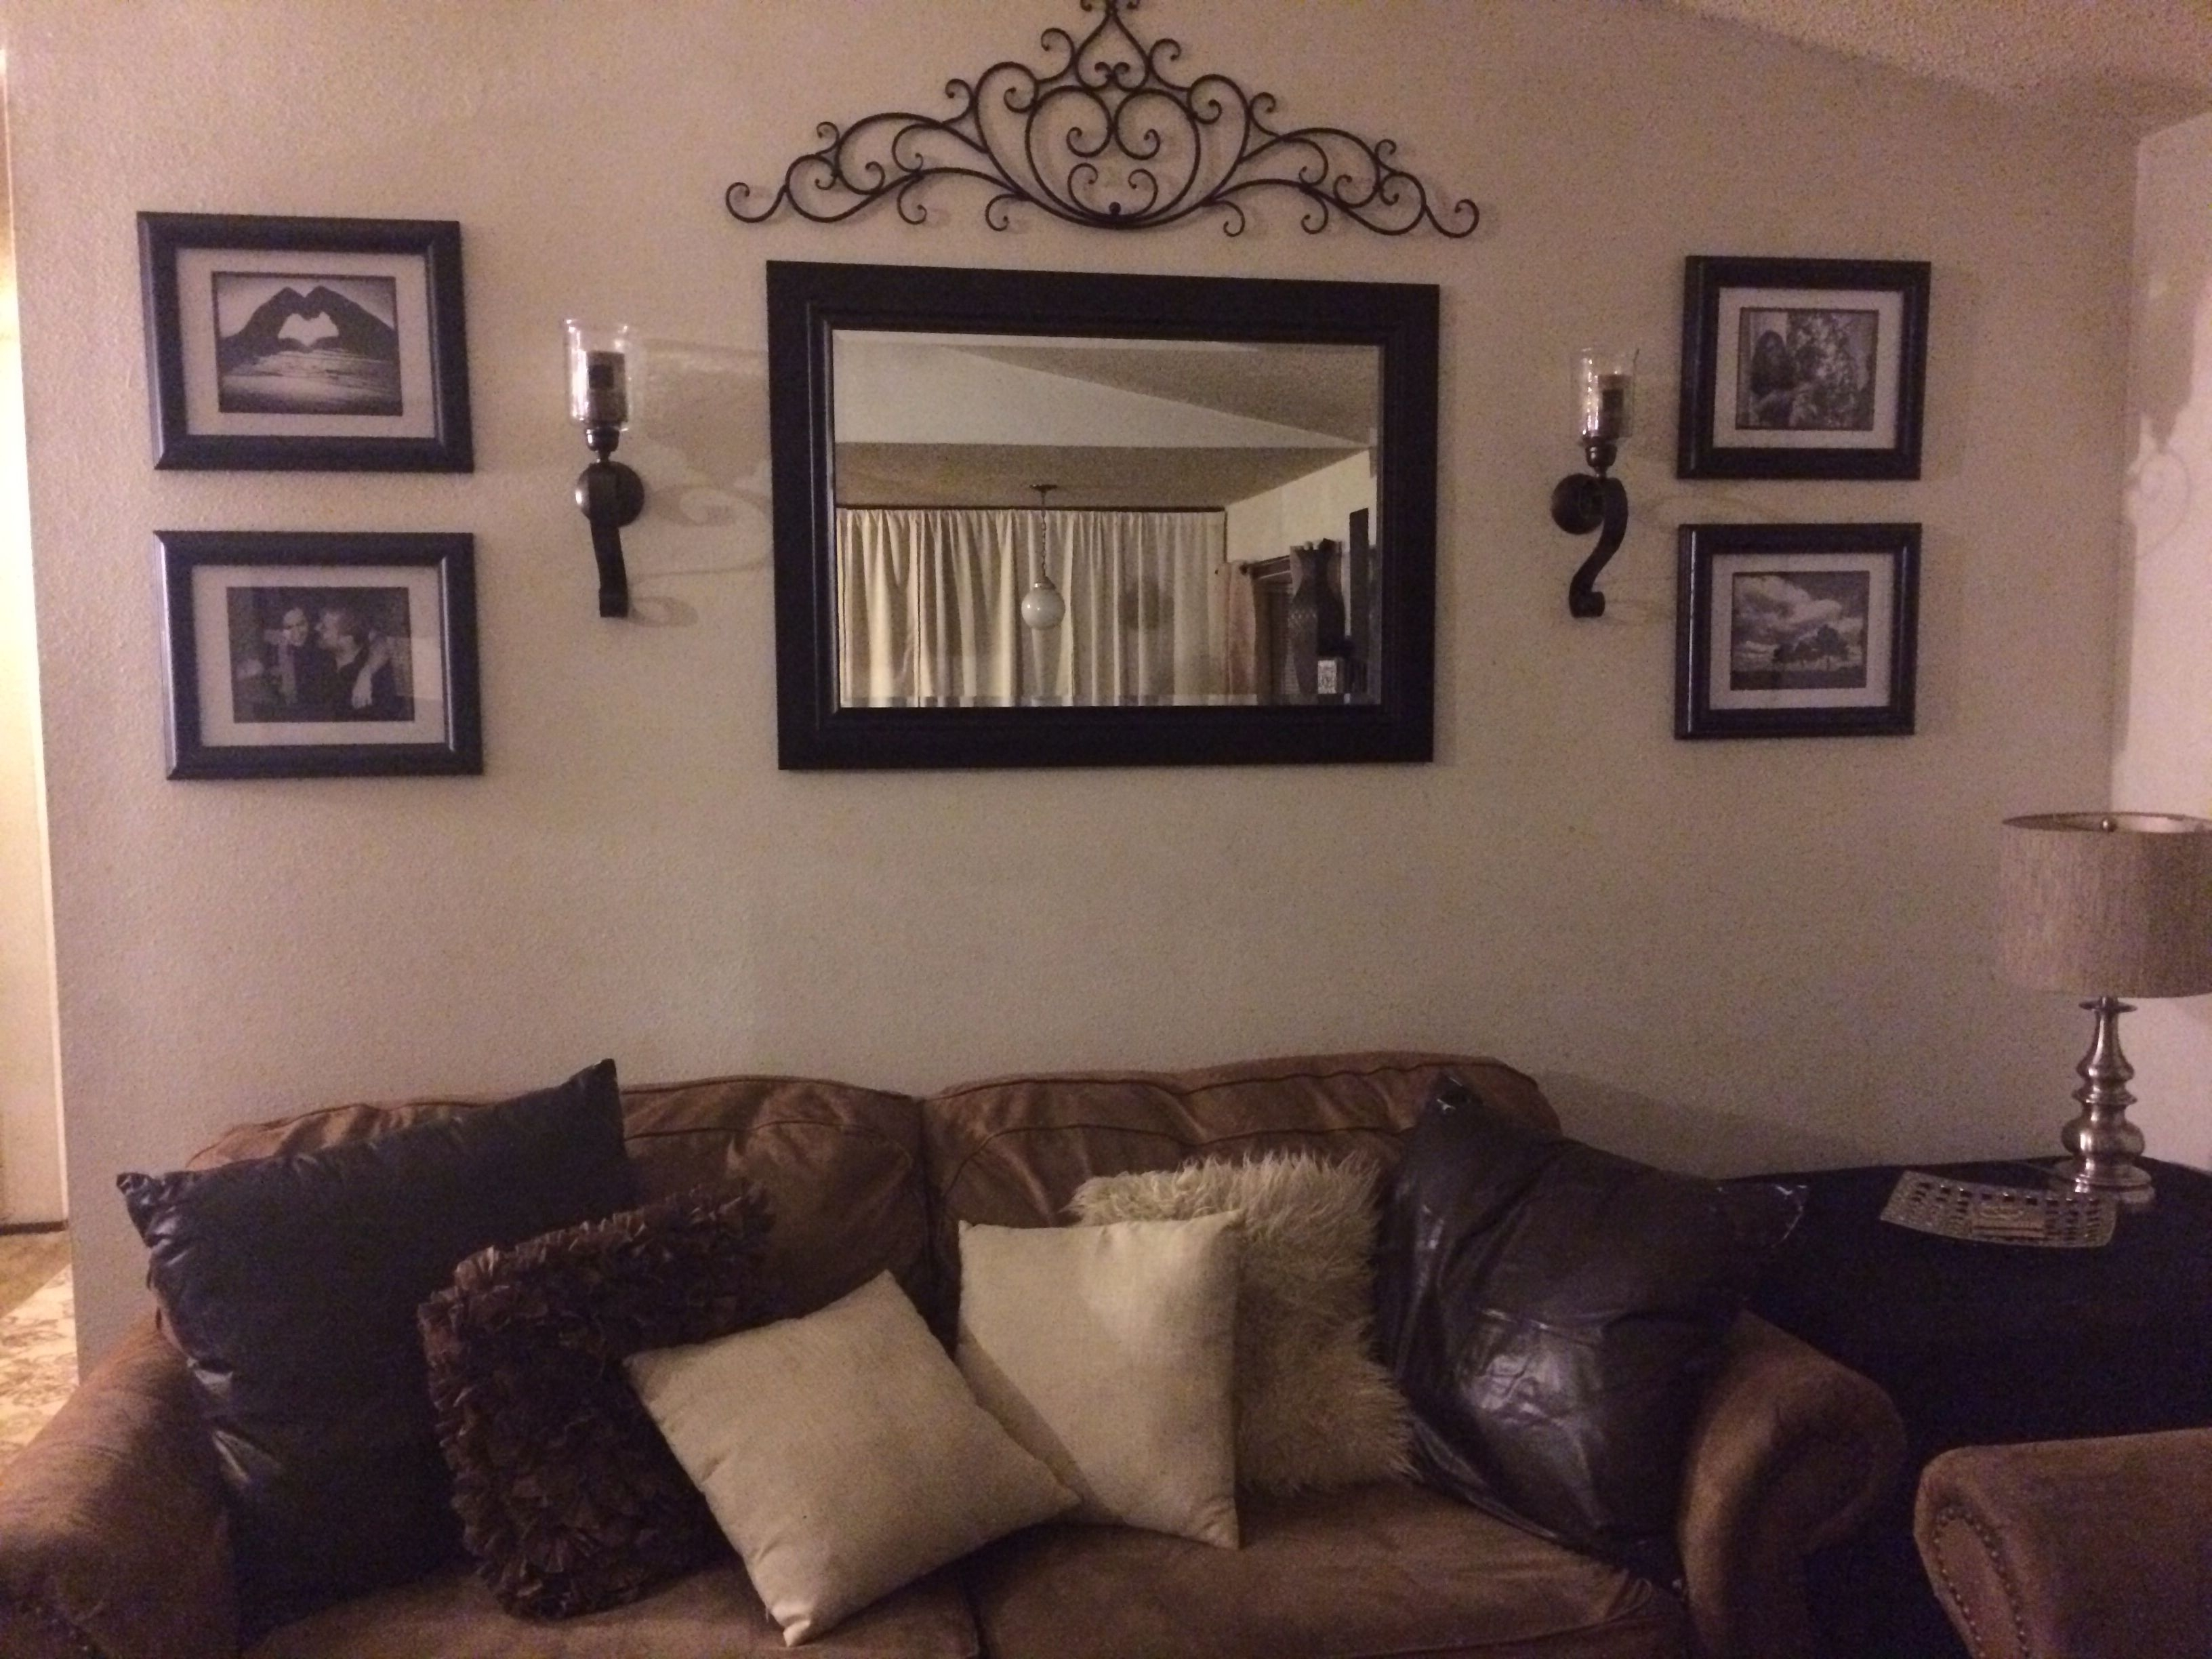 Widely Used Behind Couch Wall In Living Room Mirror, Frame, Sconces, And Metal With Regard To Wall Accents Behind Tv Or Couch (View 15 of 15)